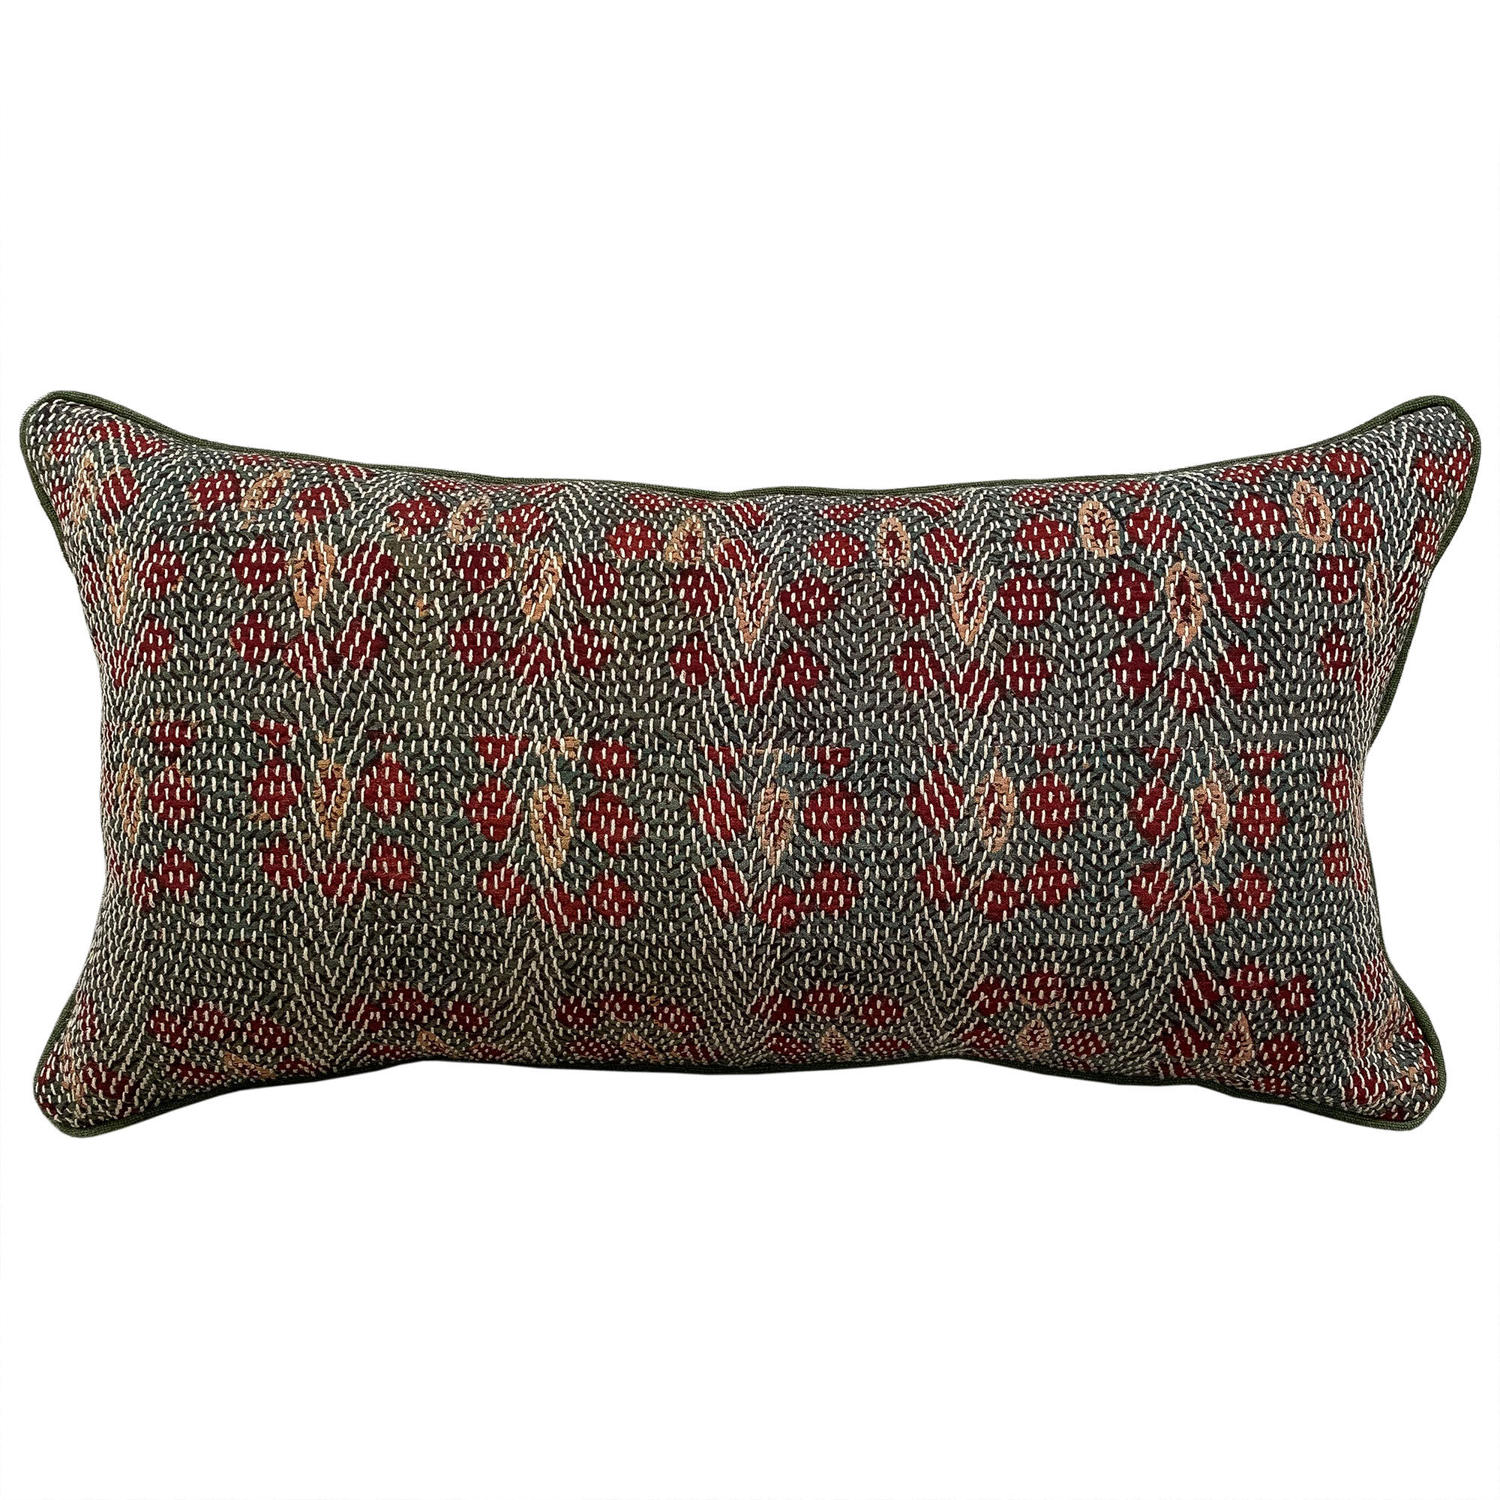 Green Banjara Cushion